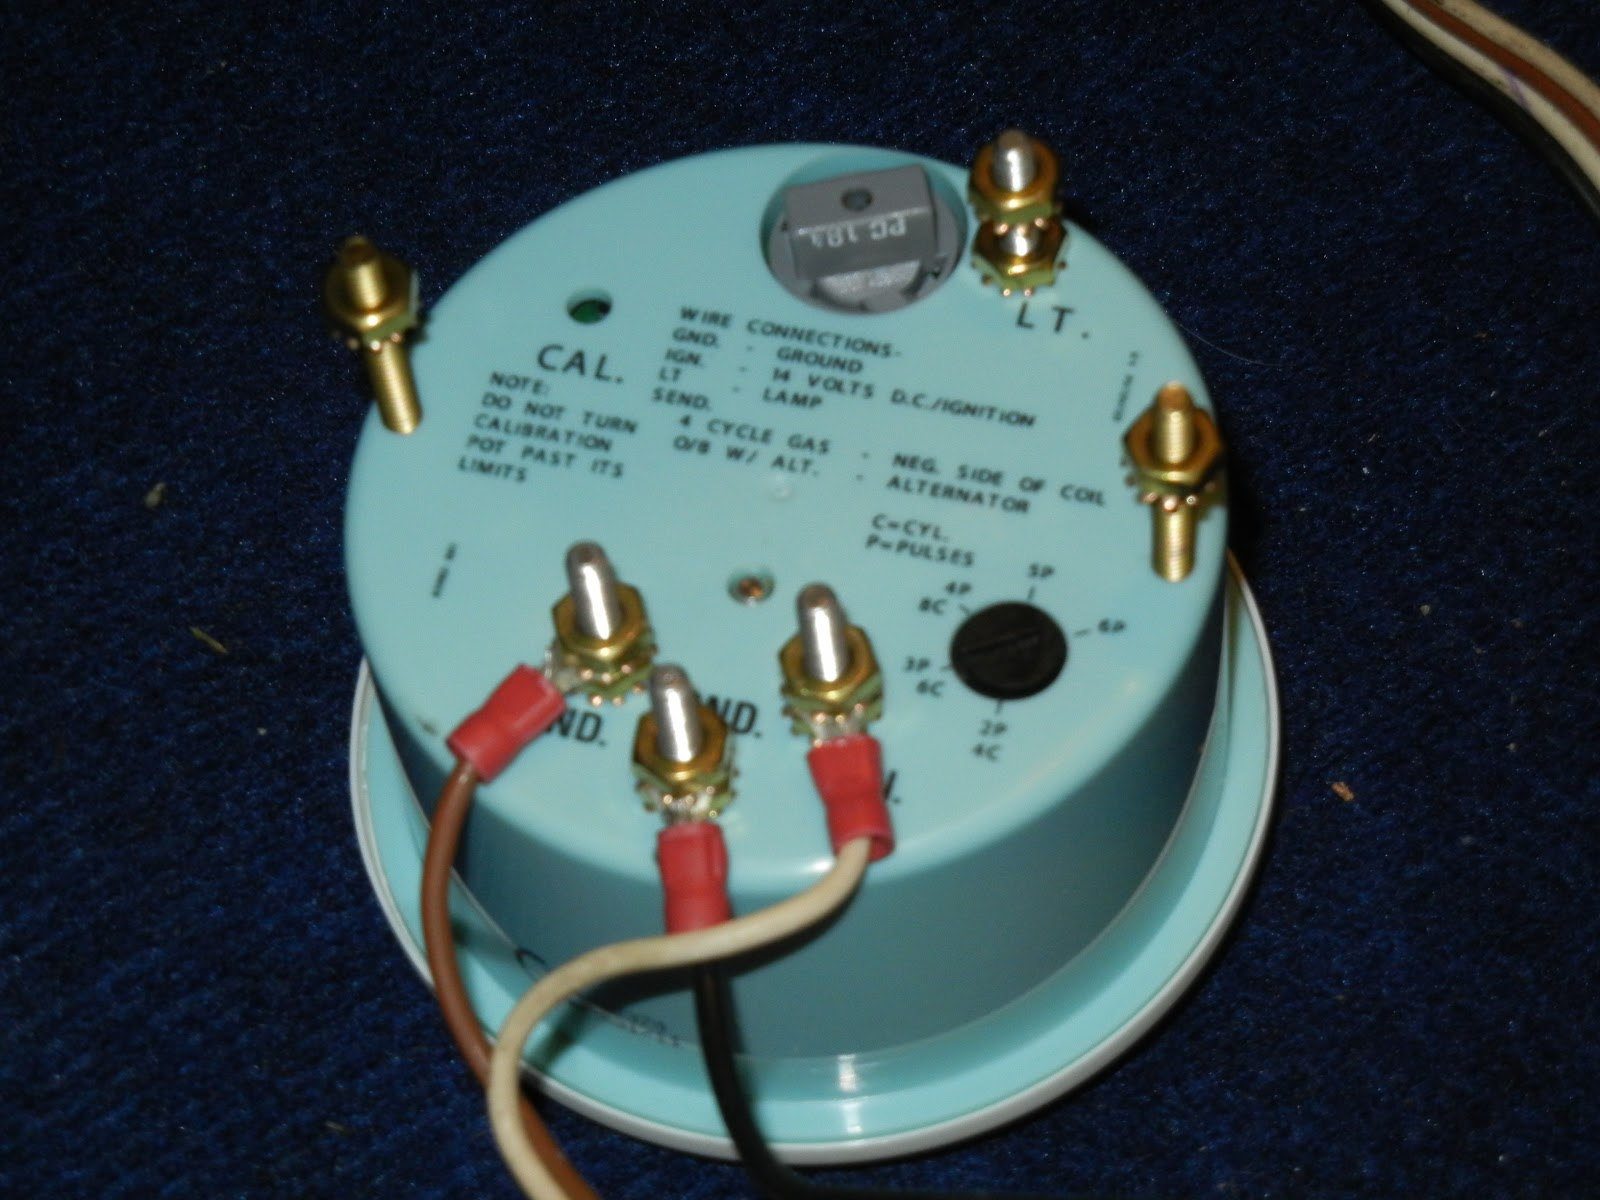 Light Switch Wiring Diagram Moreover Mercury Outboard Wiring Diagram